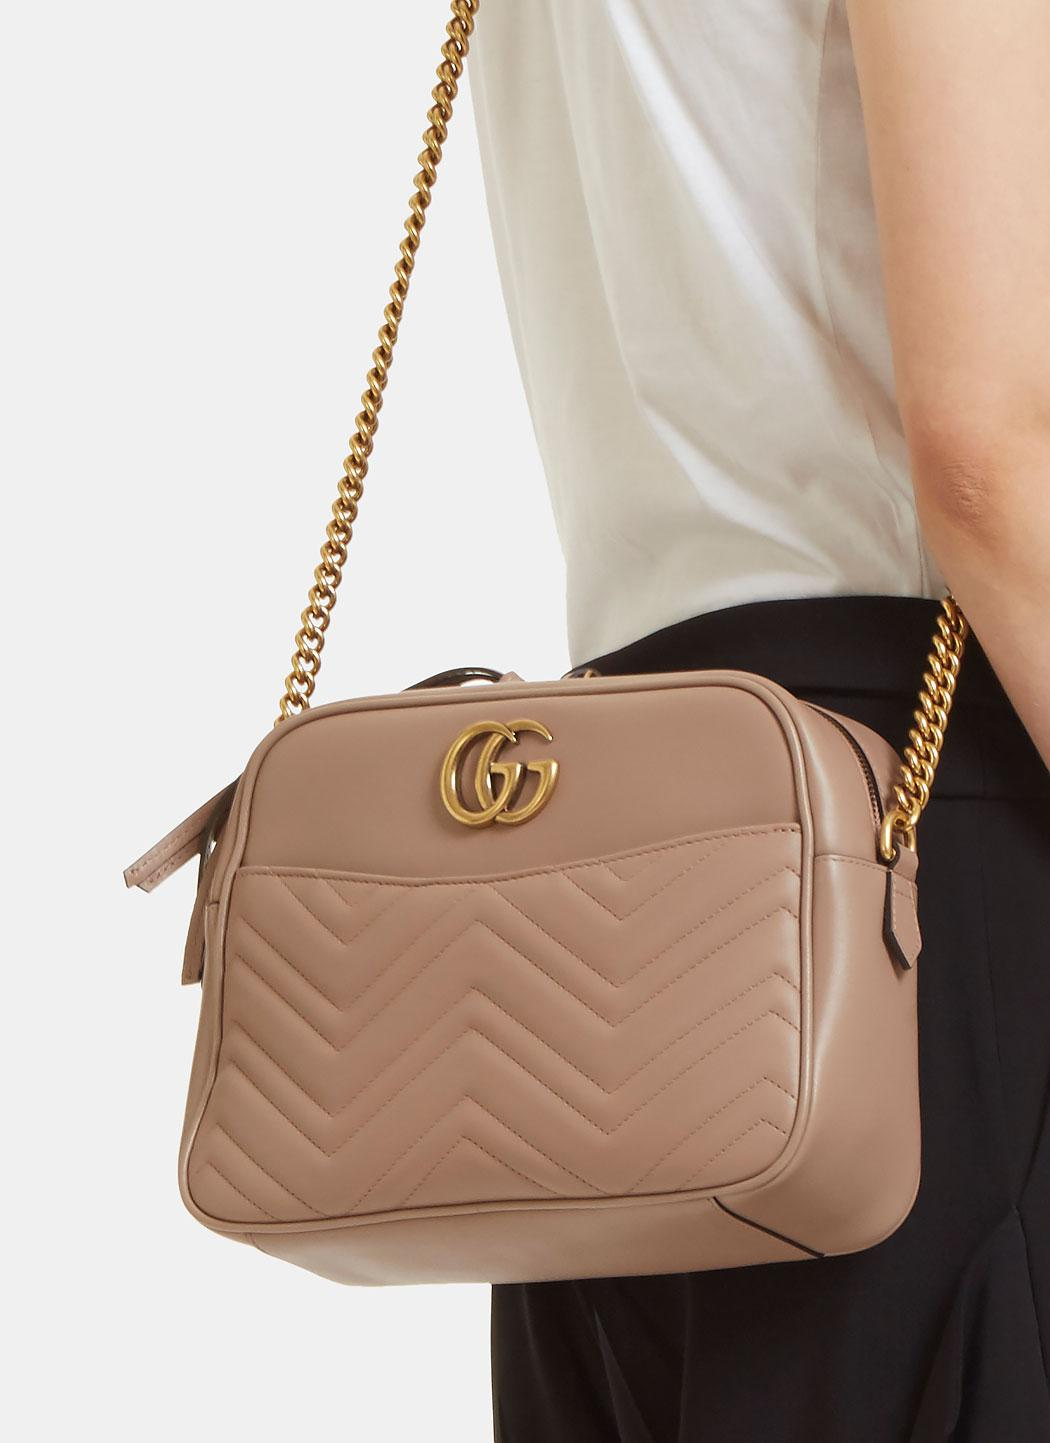 Gucci Gg Marmont Matelass 233 Medium Shoulder Bag In Taupe In